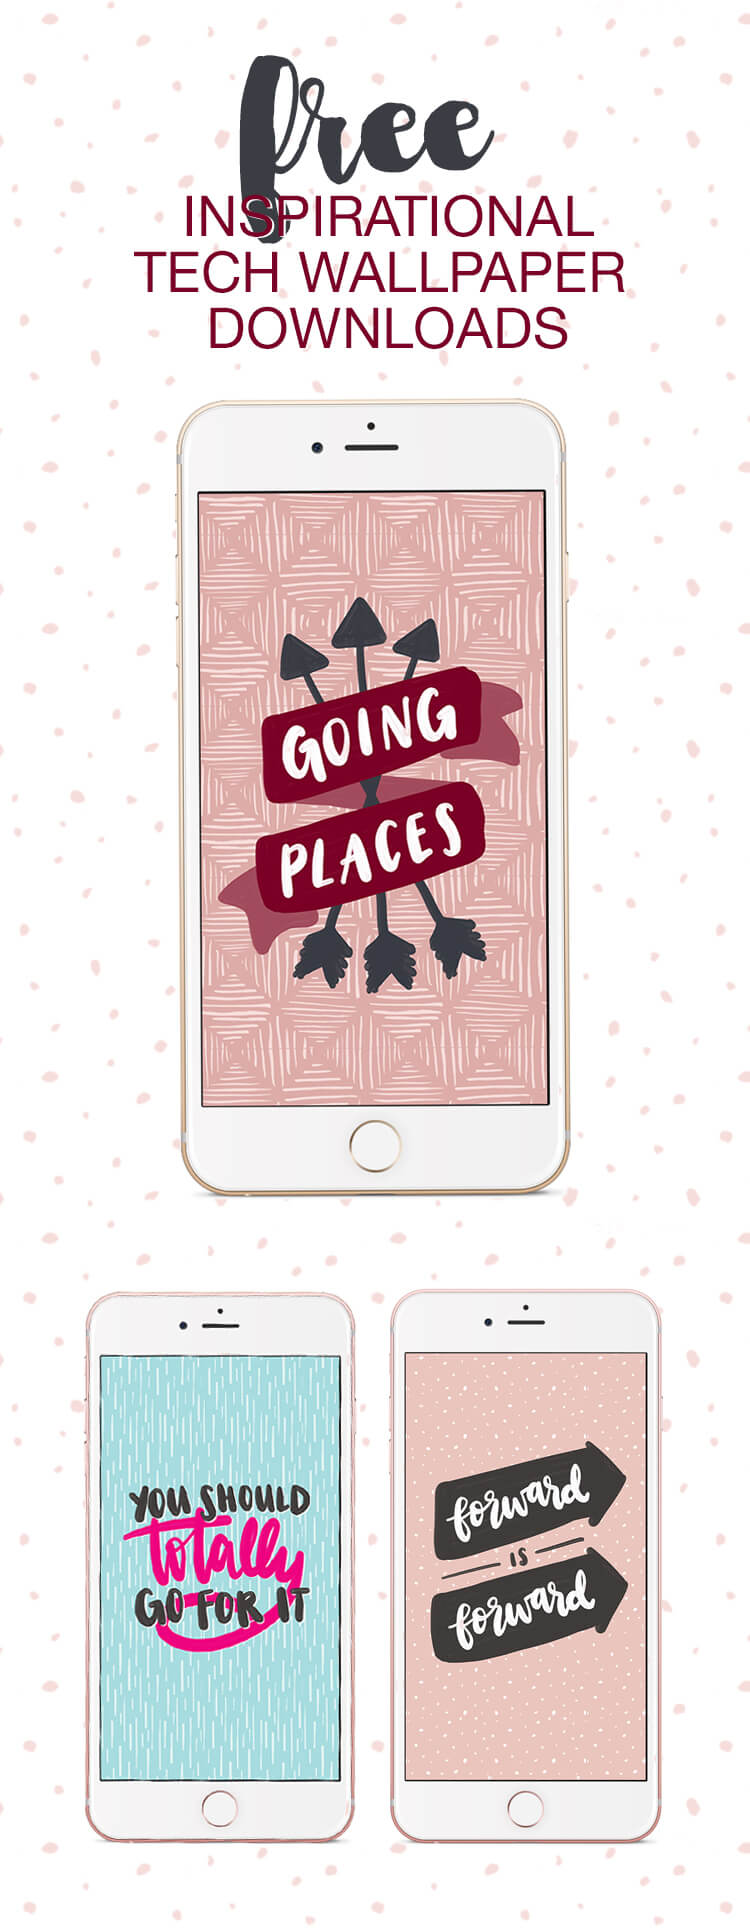 Free Inspirational Tech Wallpaper Downloads - dress up your phone or tablet with these cute hand drawn designs